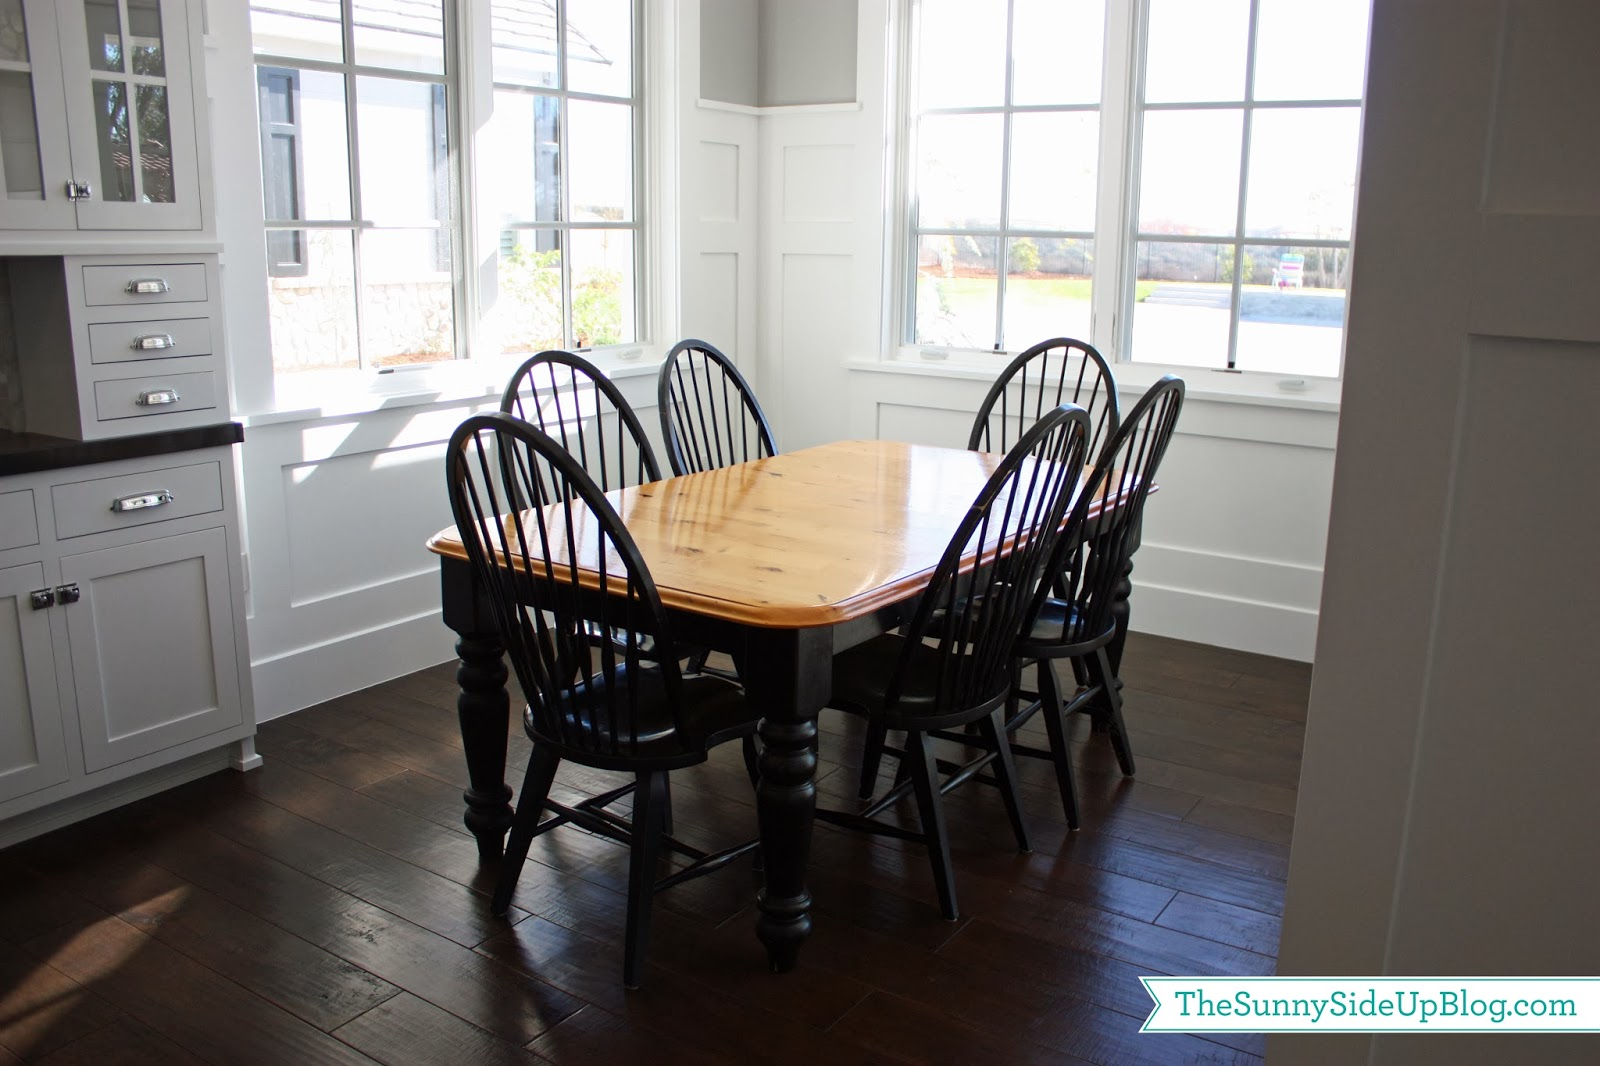 My new kitchen! - The Sunny Side Up Blog